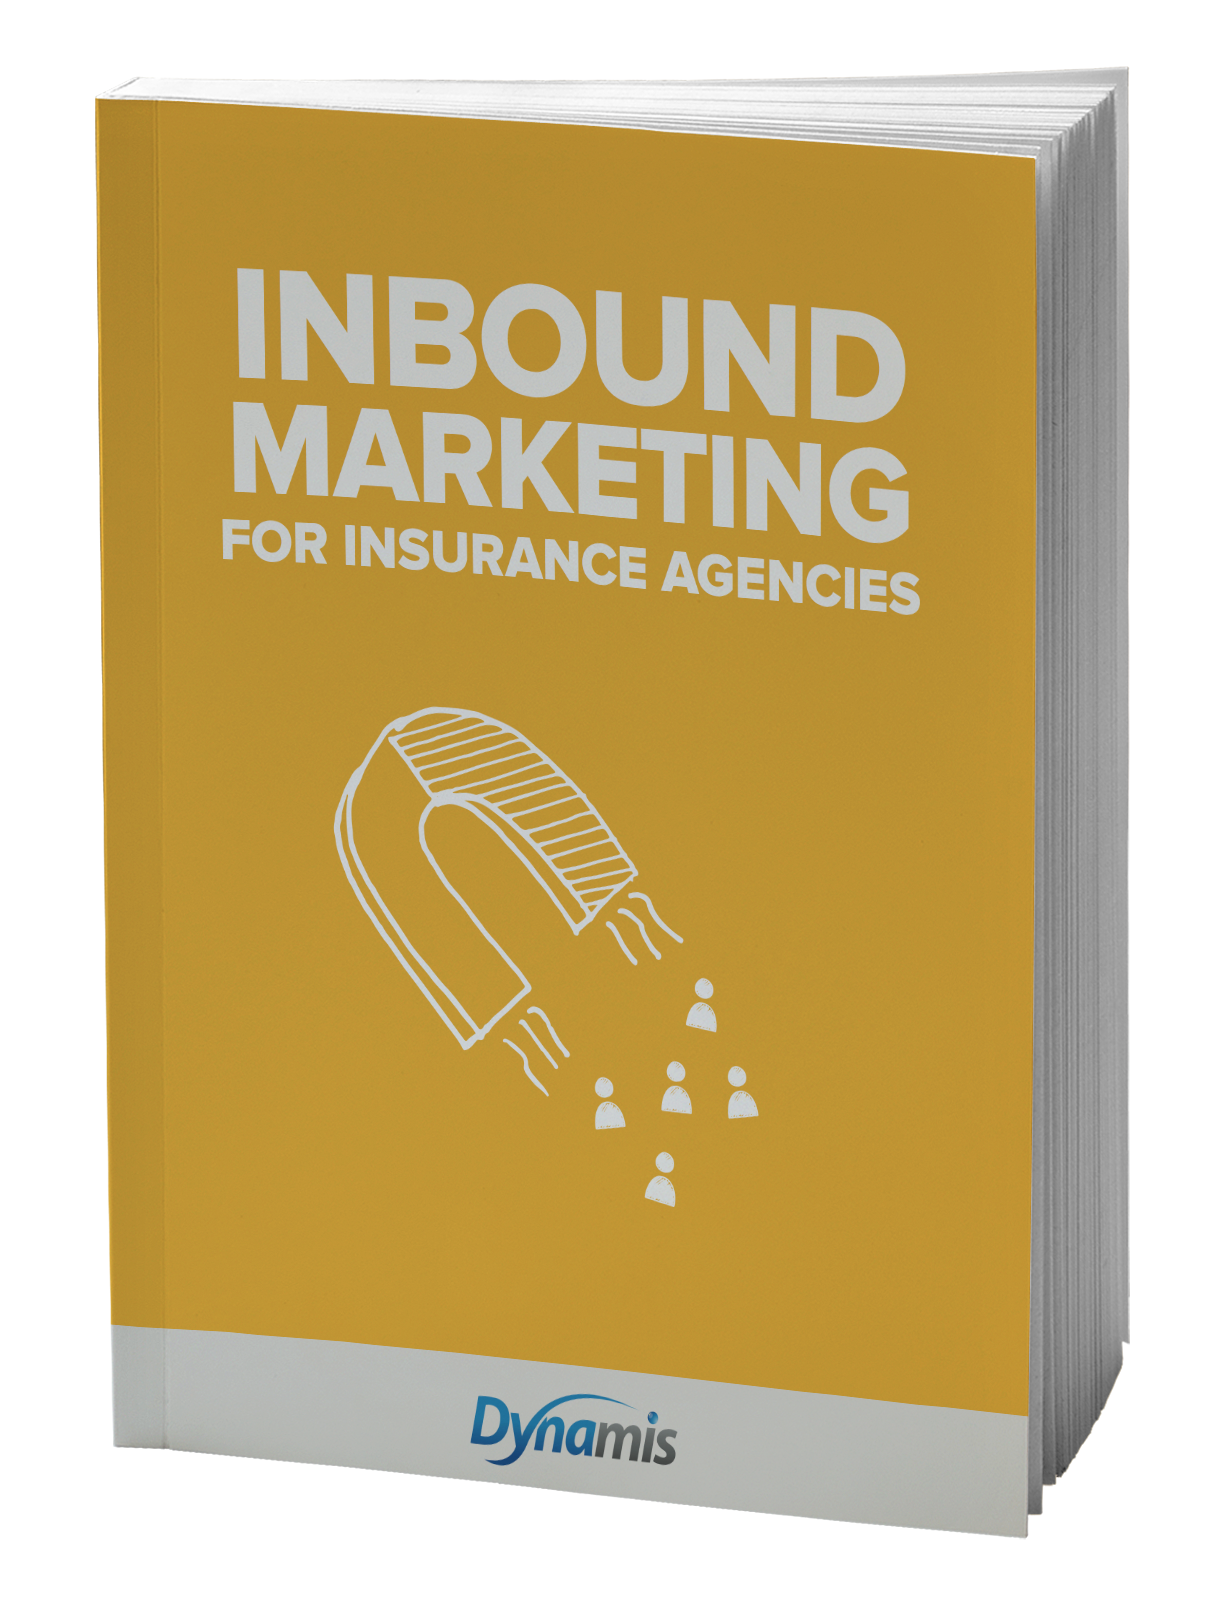 Inbound Marketing for Insurance Agencies